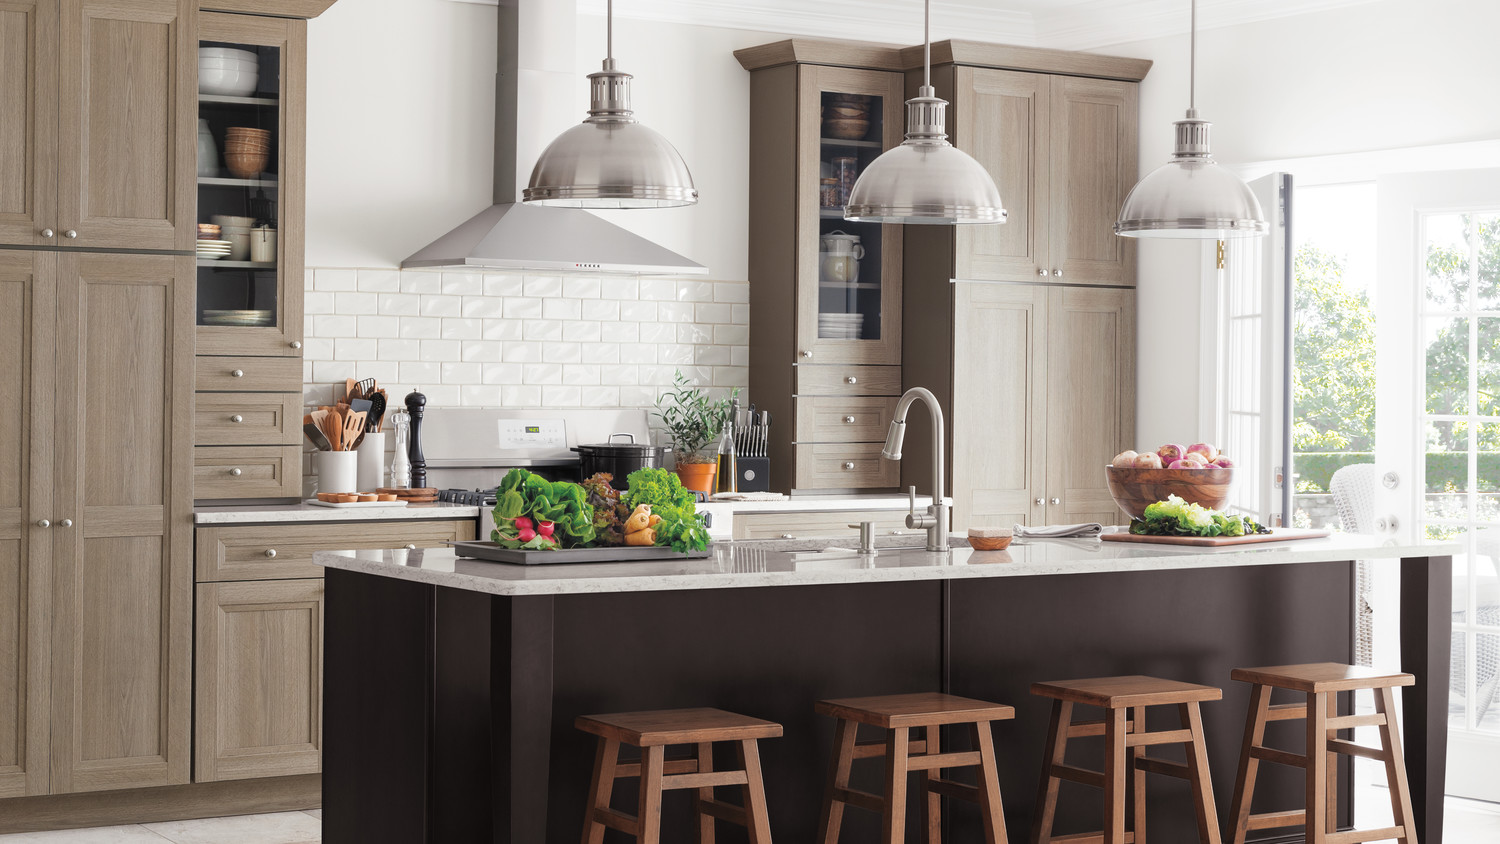 Video: Martha Stewart Shares Her Kitchen Design Inspiration | Martha Stewart